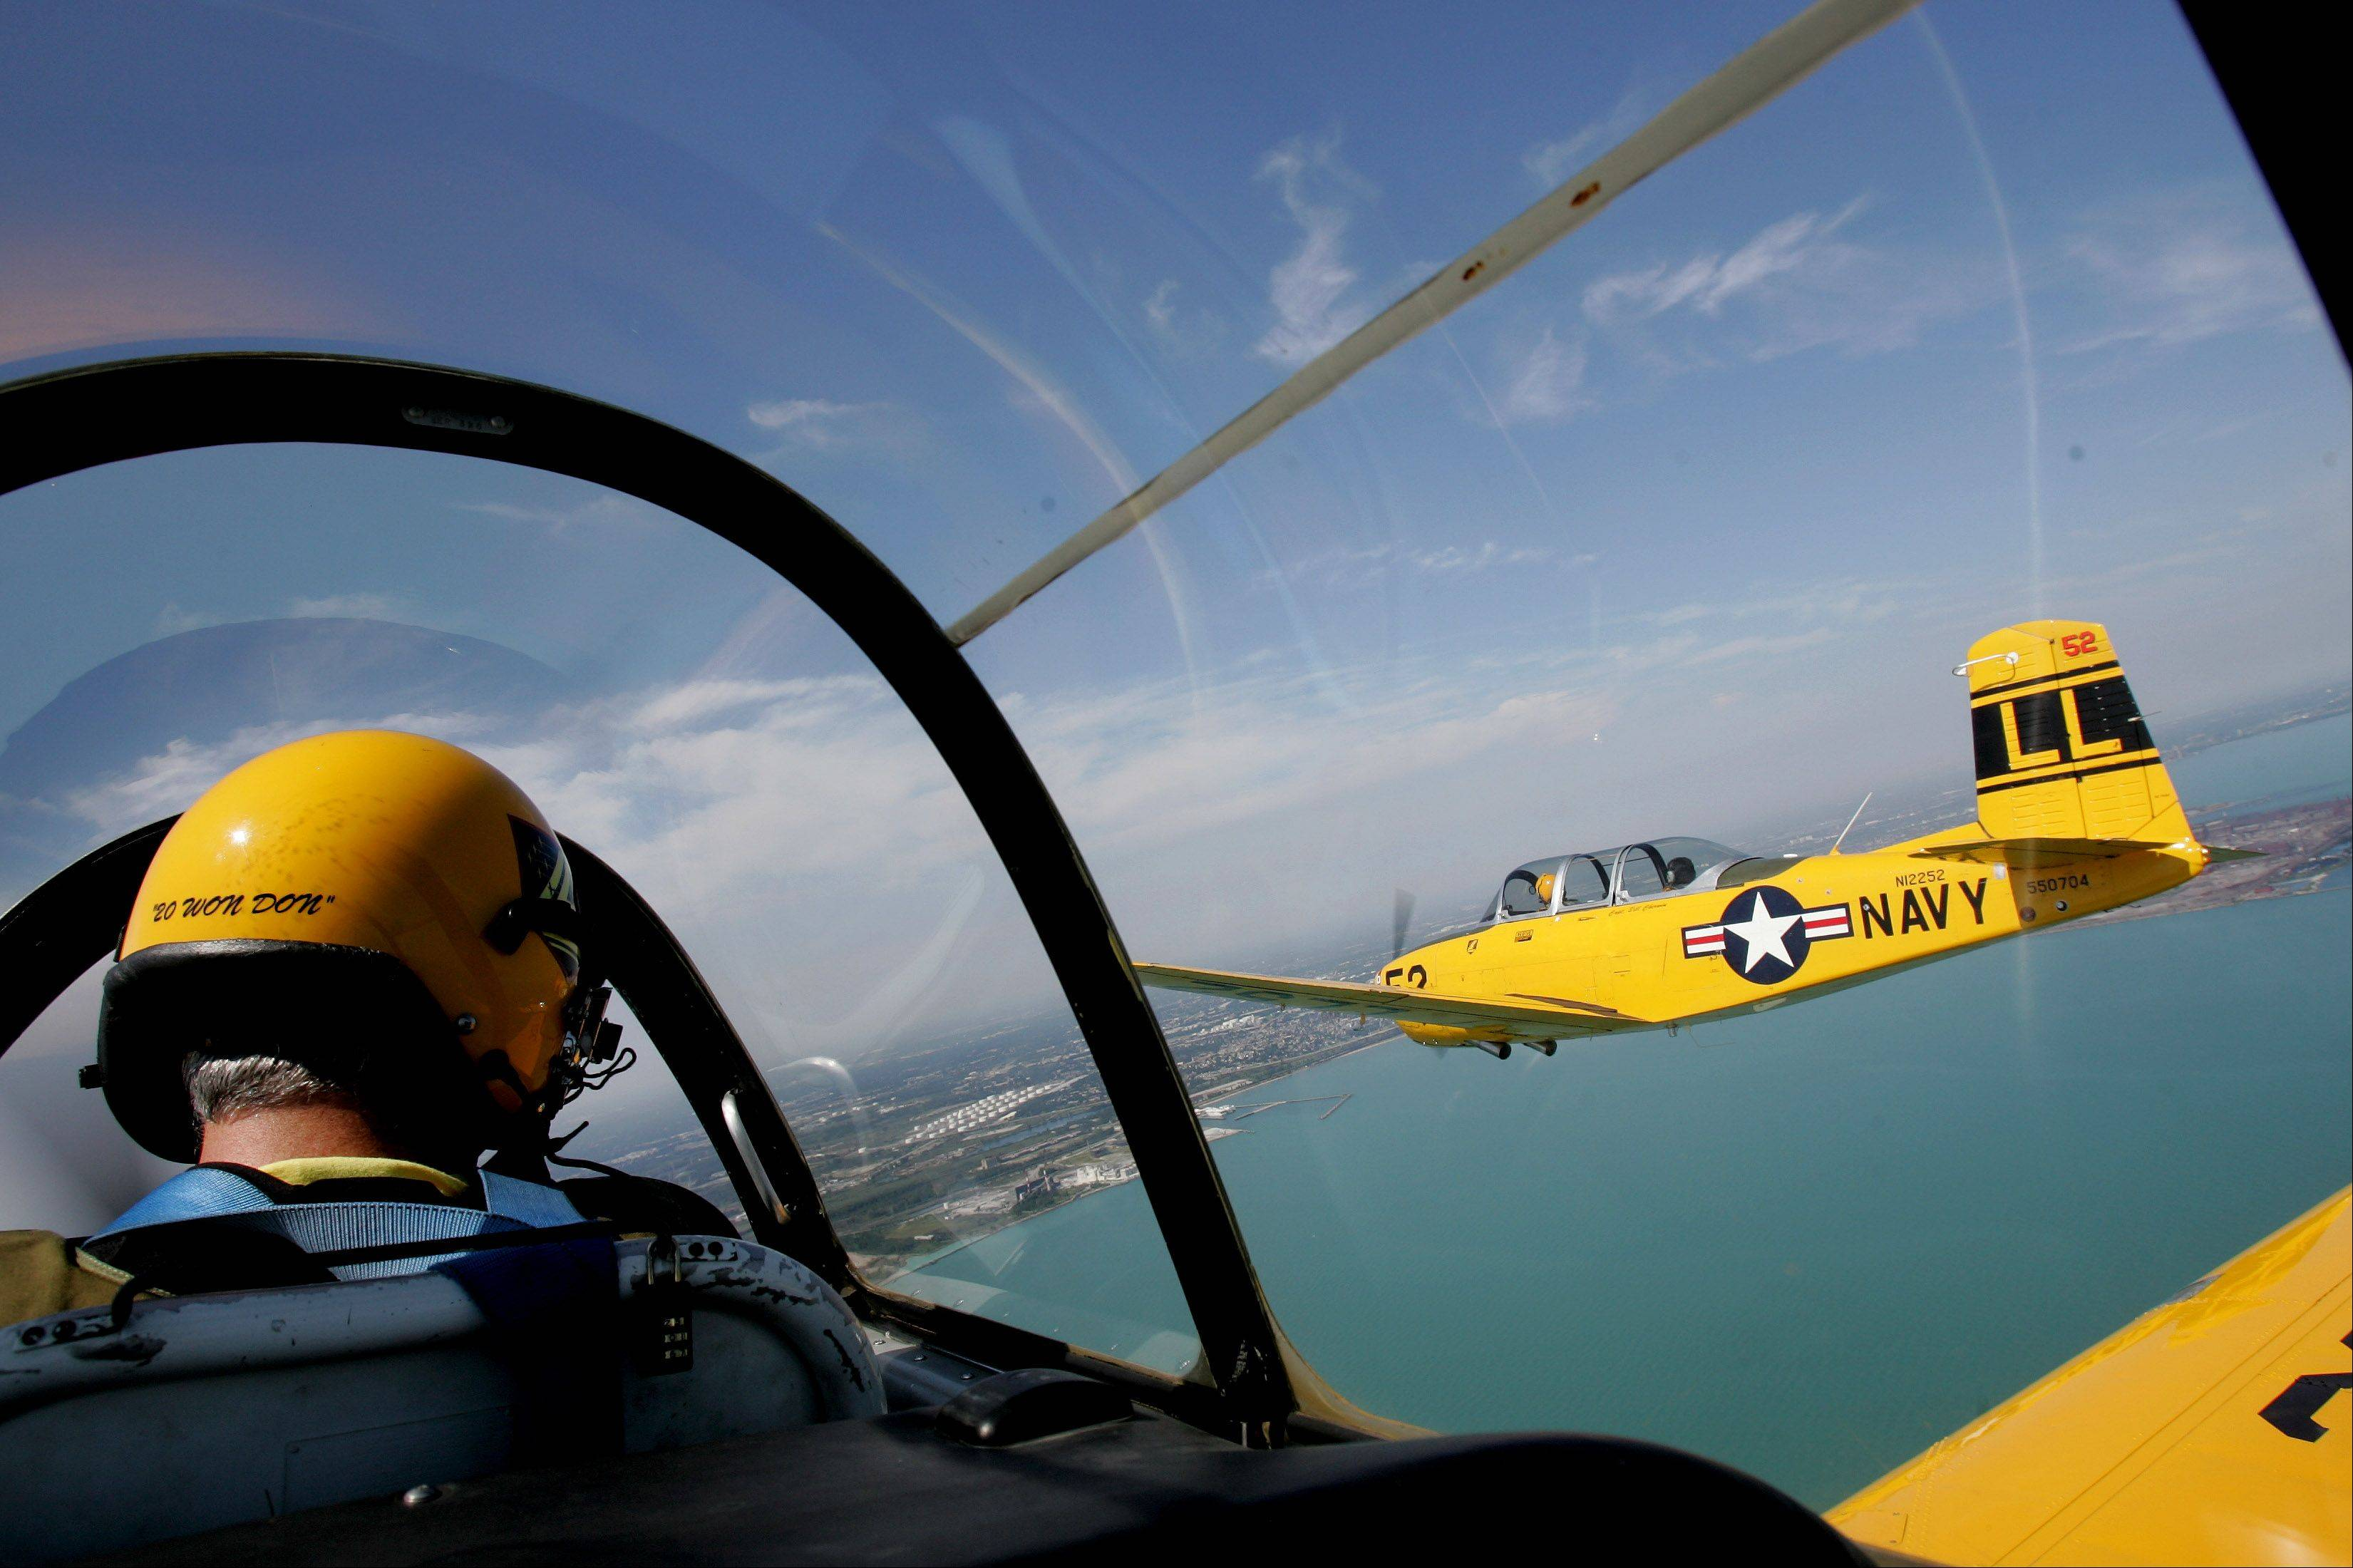 Civilian and military aircraft provide displays of aerial feats at the Chicago Air & Water Show.